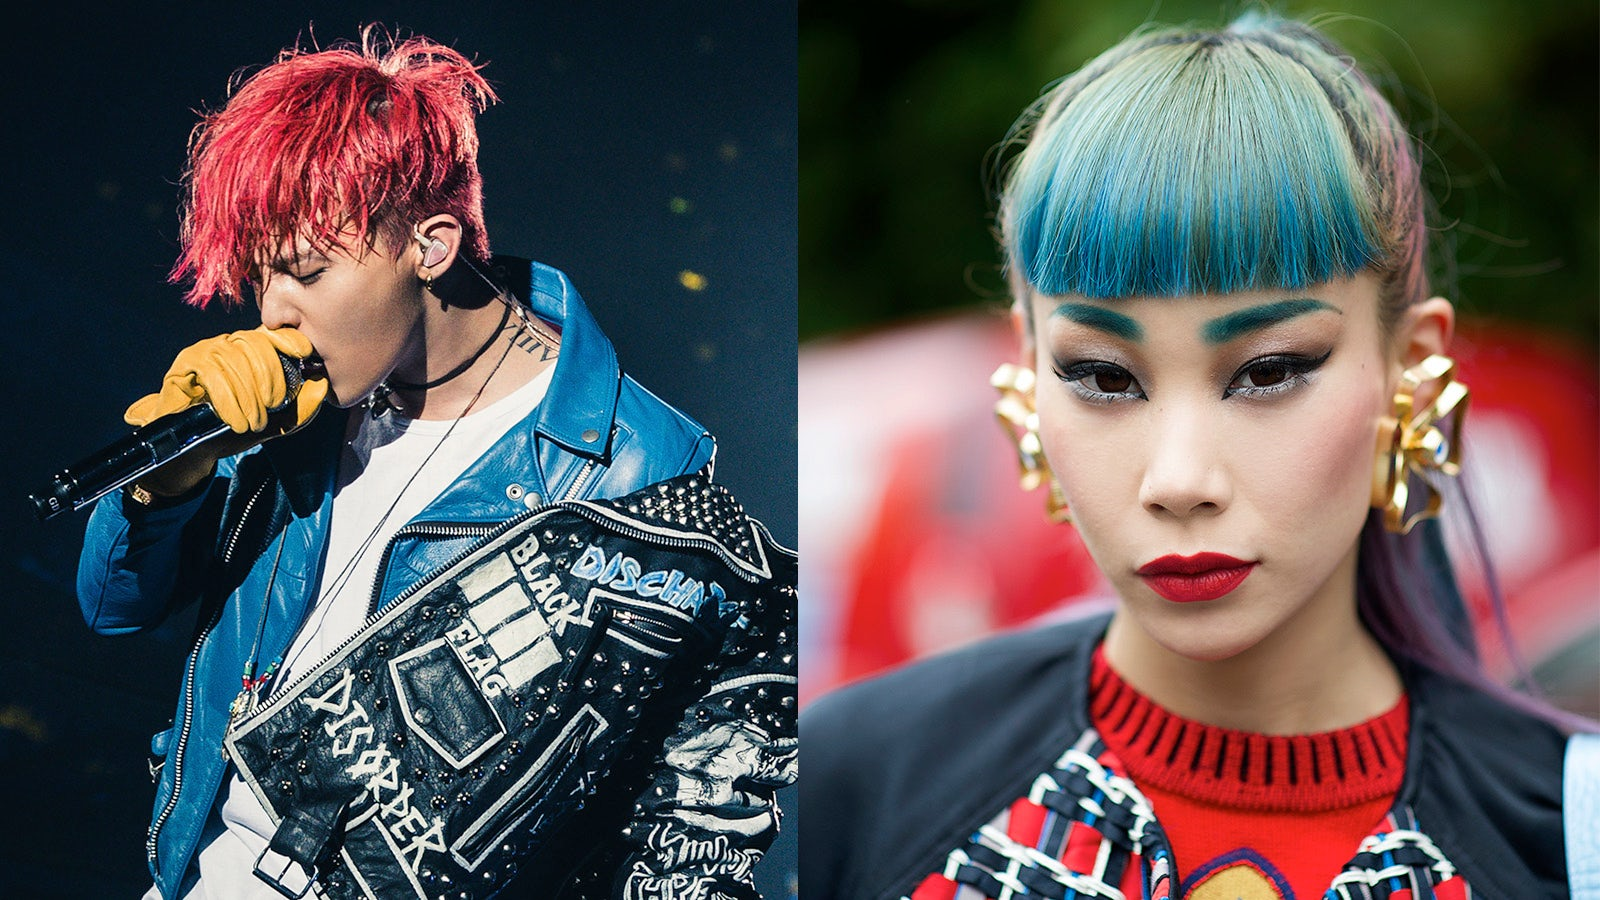 G-Dragon (L) and Mademoiselle Yulia (R) | Photo: YG Entertainment (L) and Youngjun Koo (R)